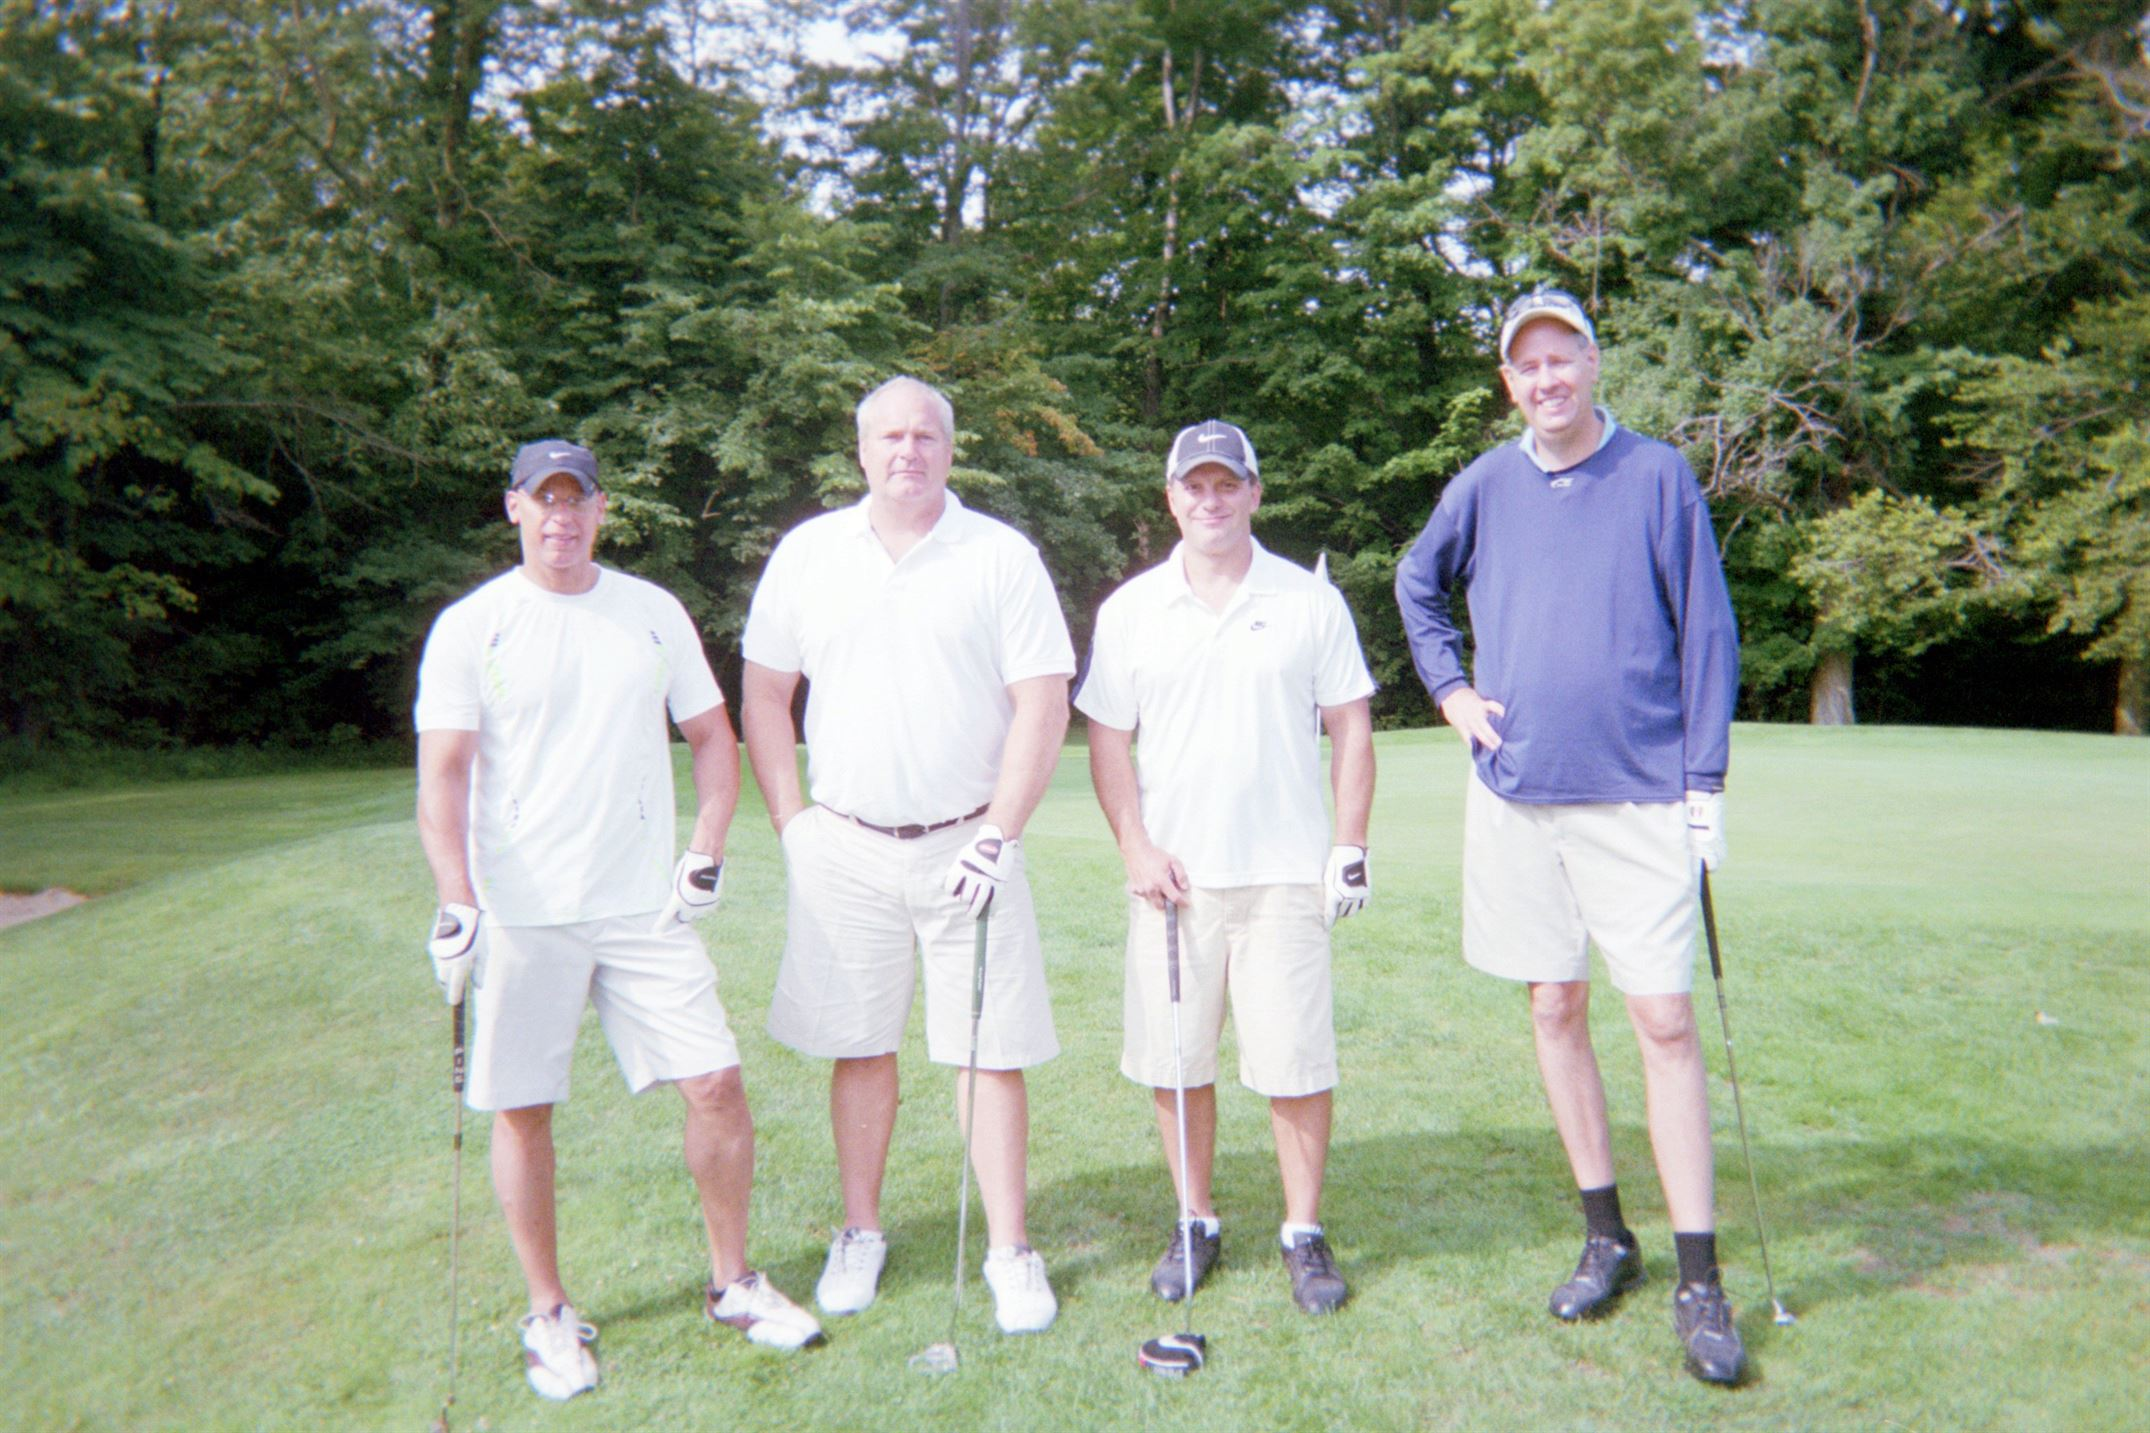 Antonio DeJesus, Mike Doherty, Mark Malizia, Larry McGrath